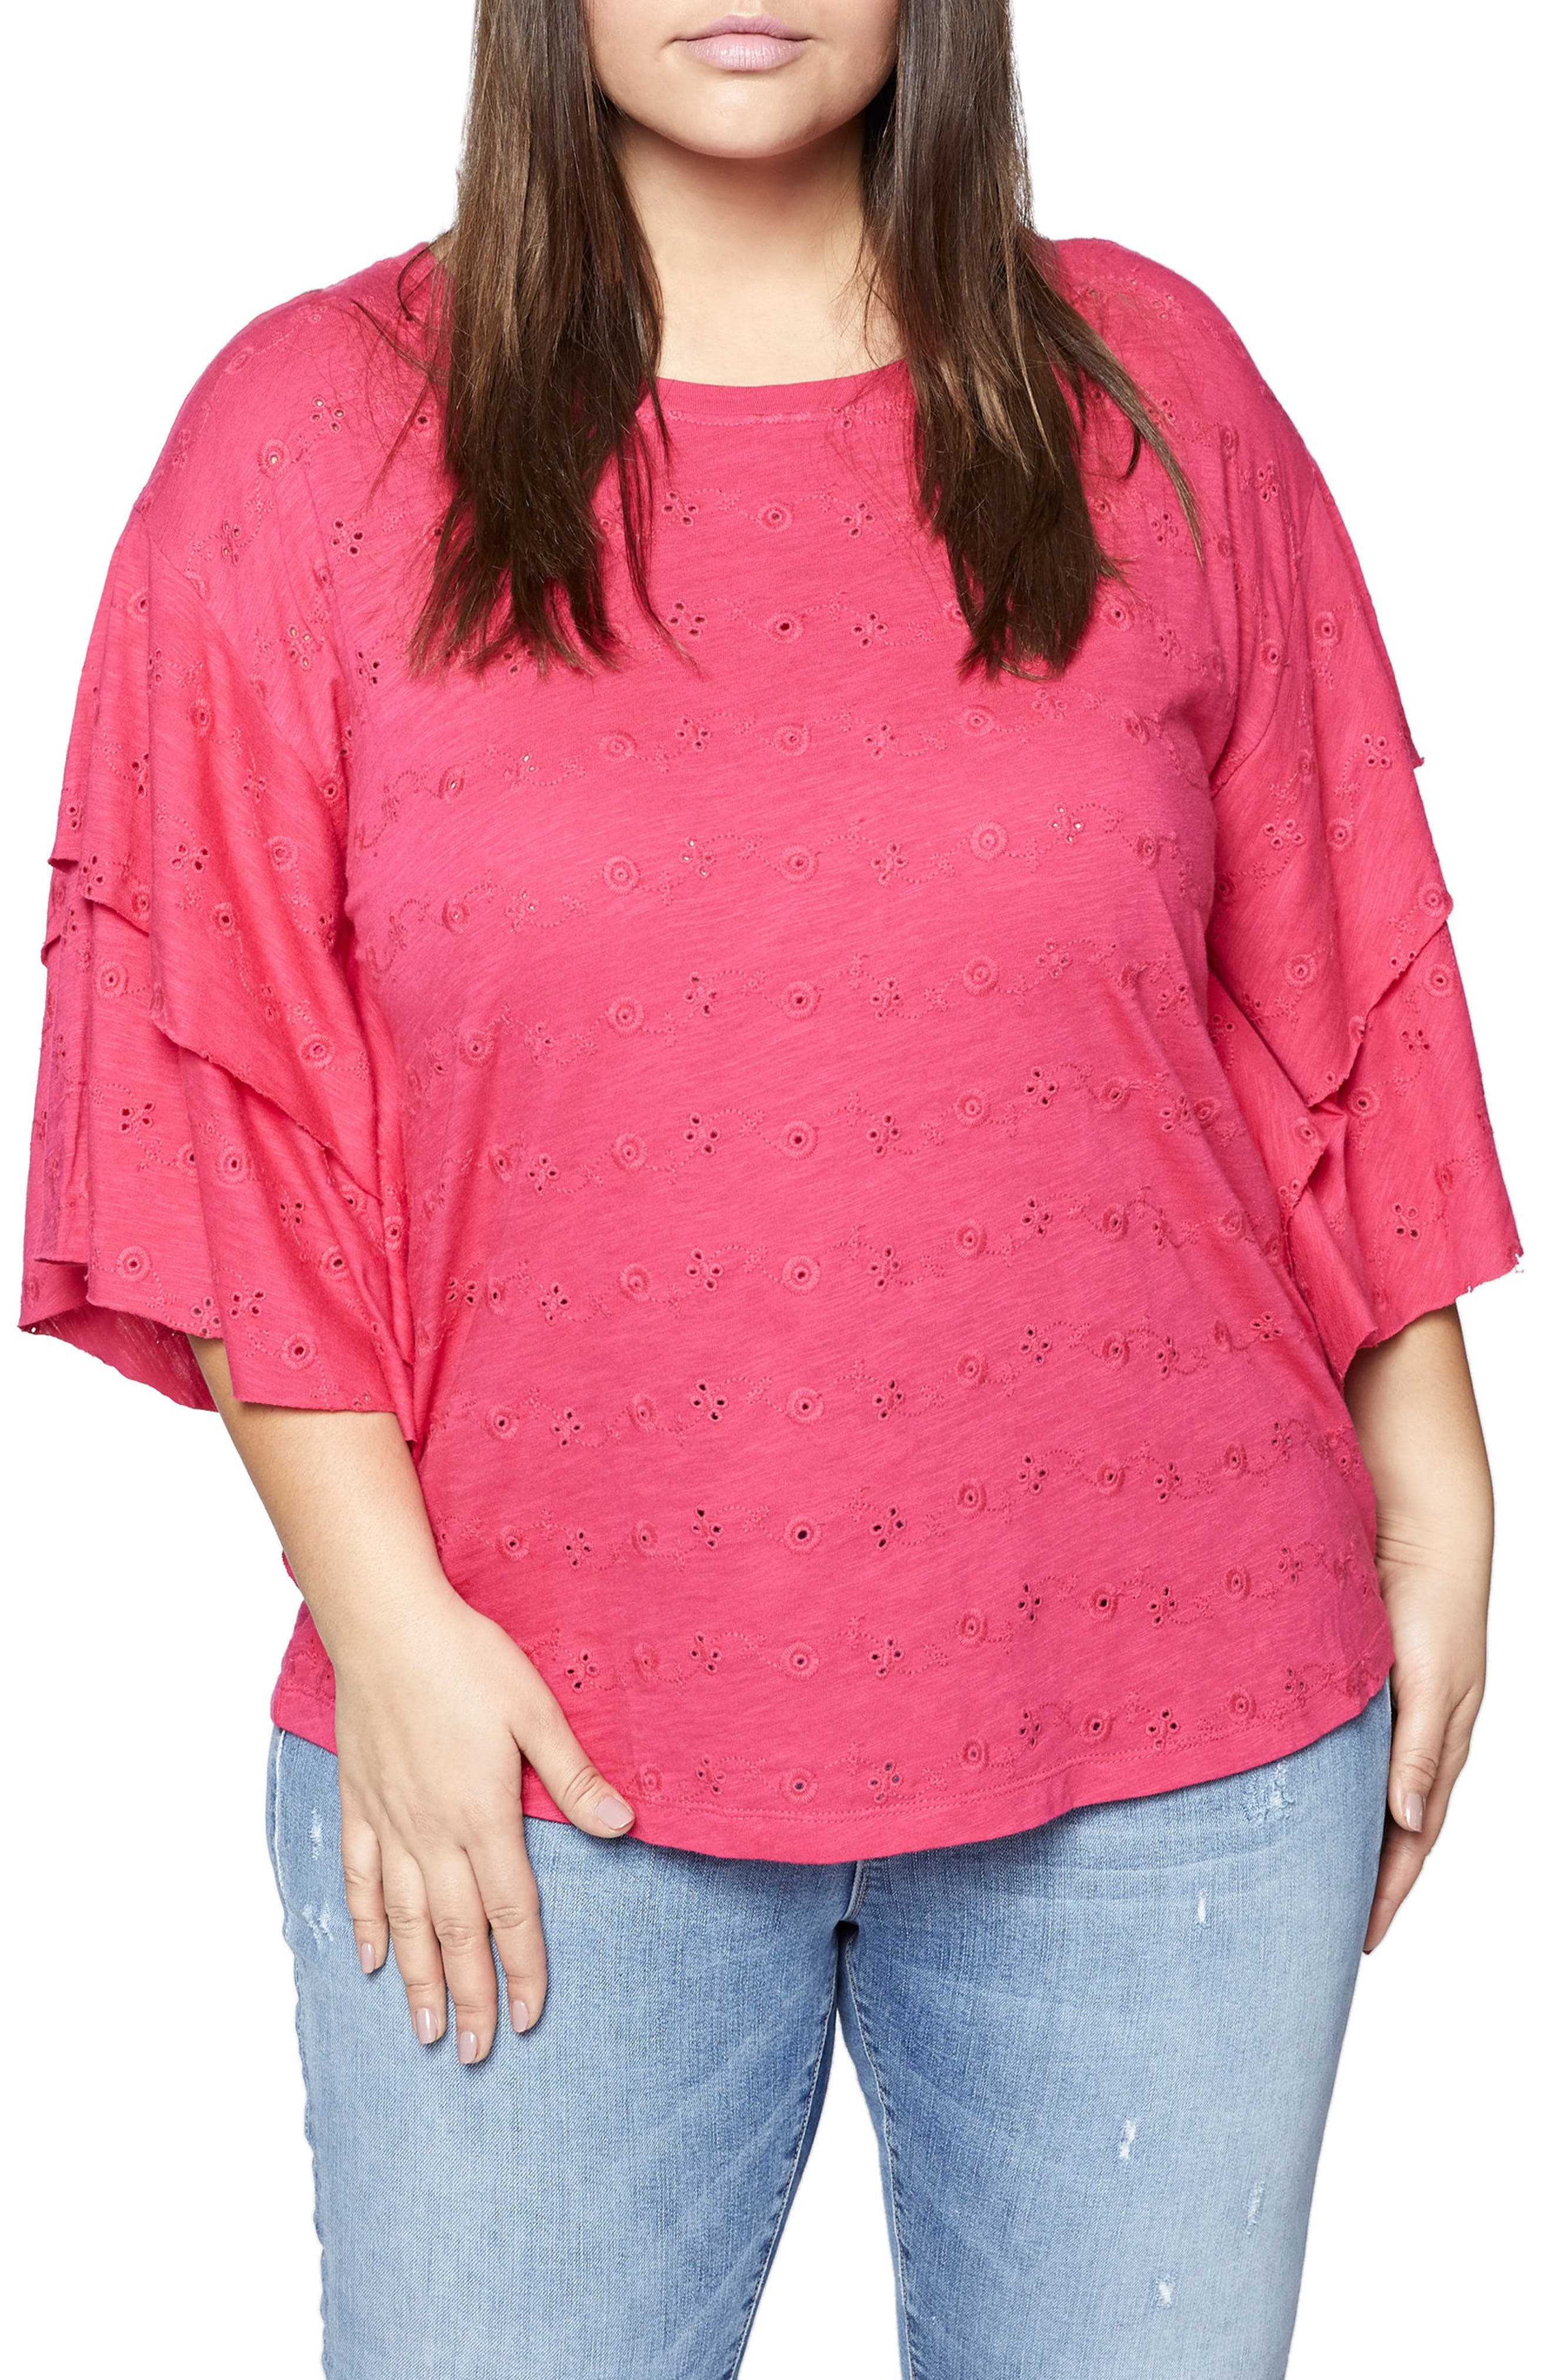 Elise Ruffled Eyelet Top,                         Main,                         color, Camellia